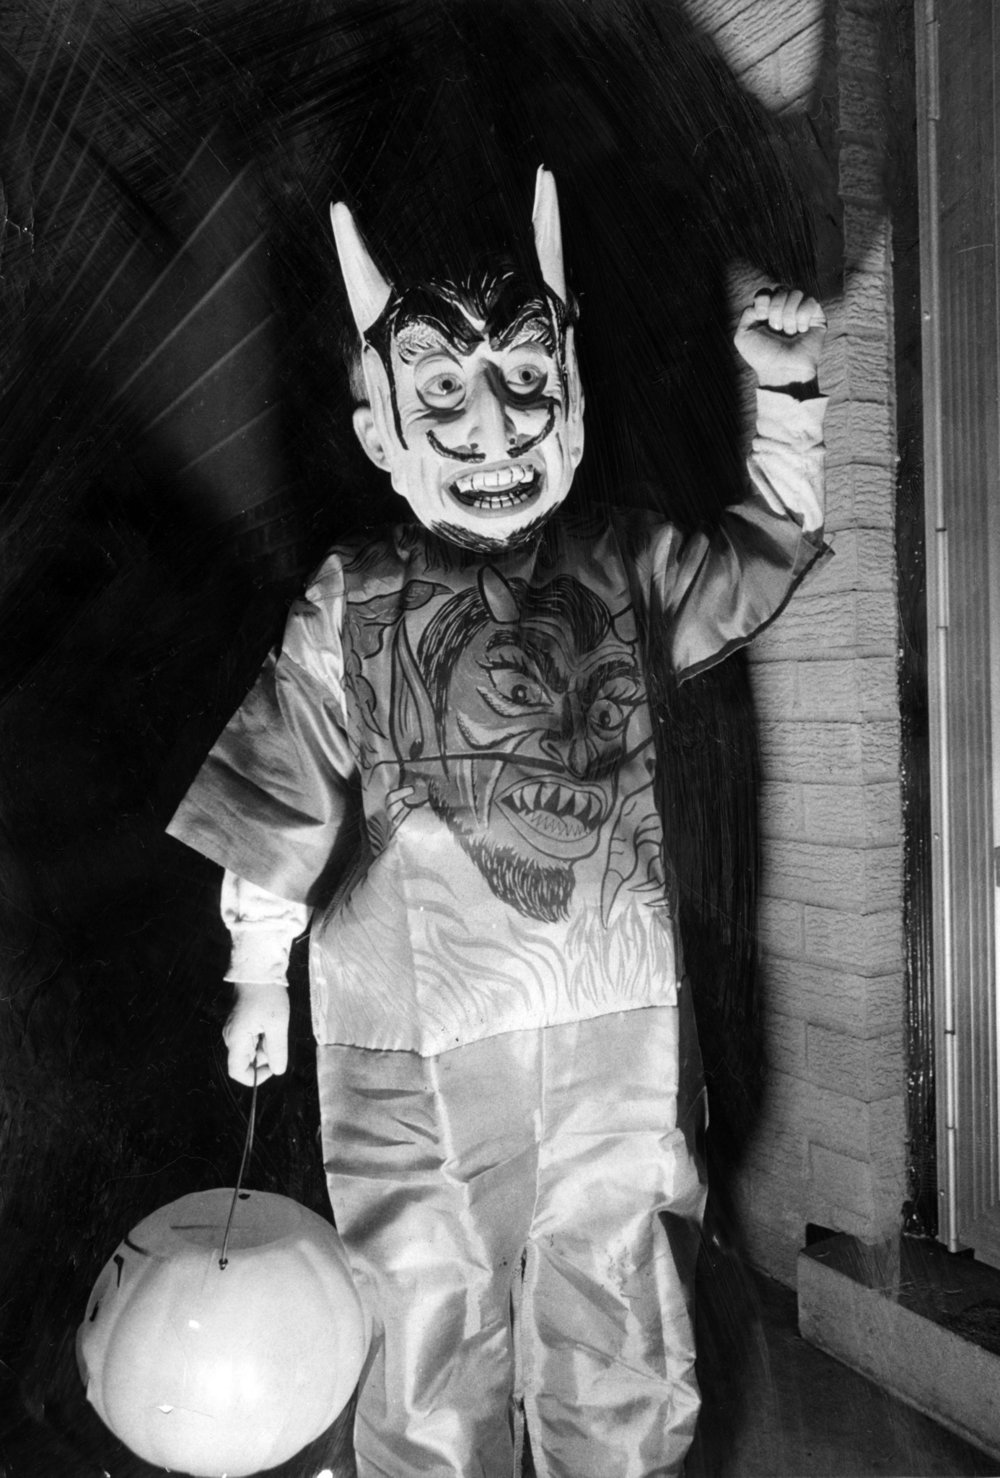 21 Vintage Halloween Photos That Are So Creepy They'll Give You ...